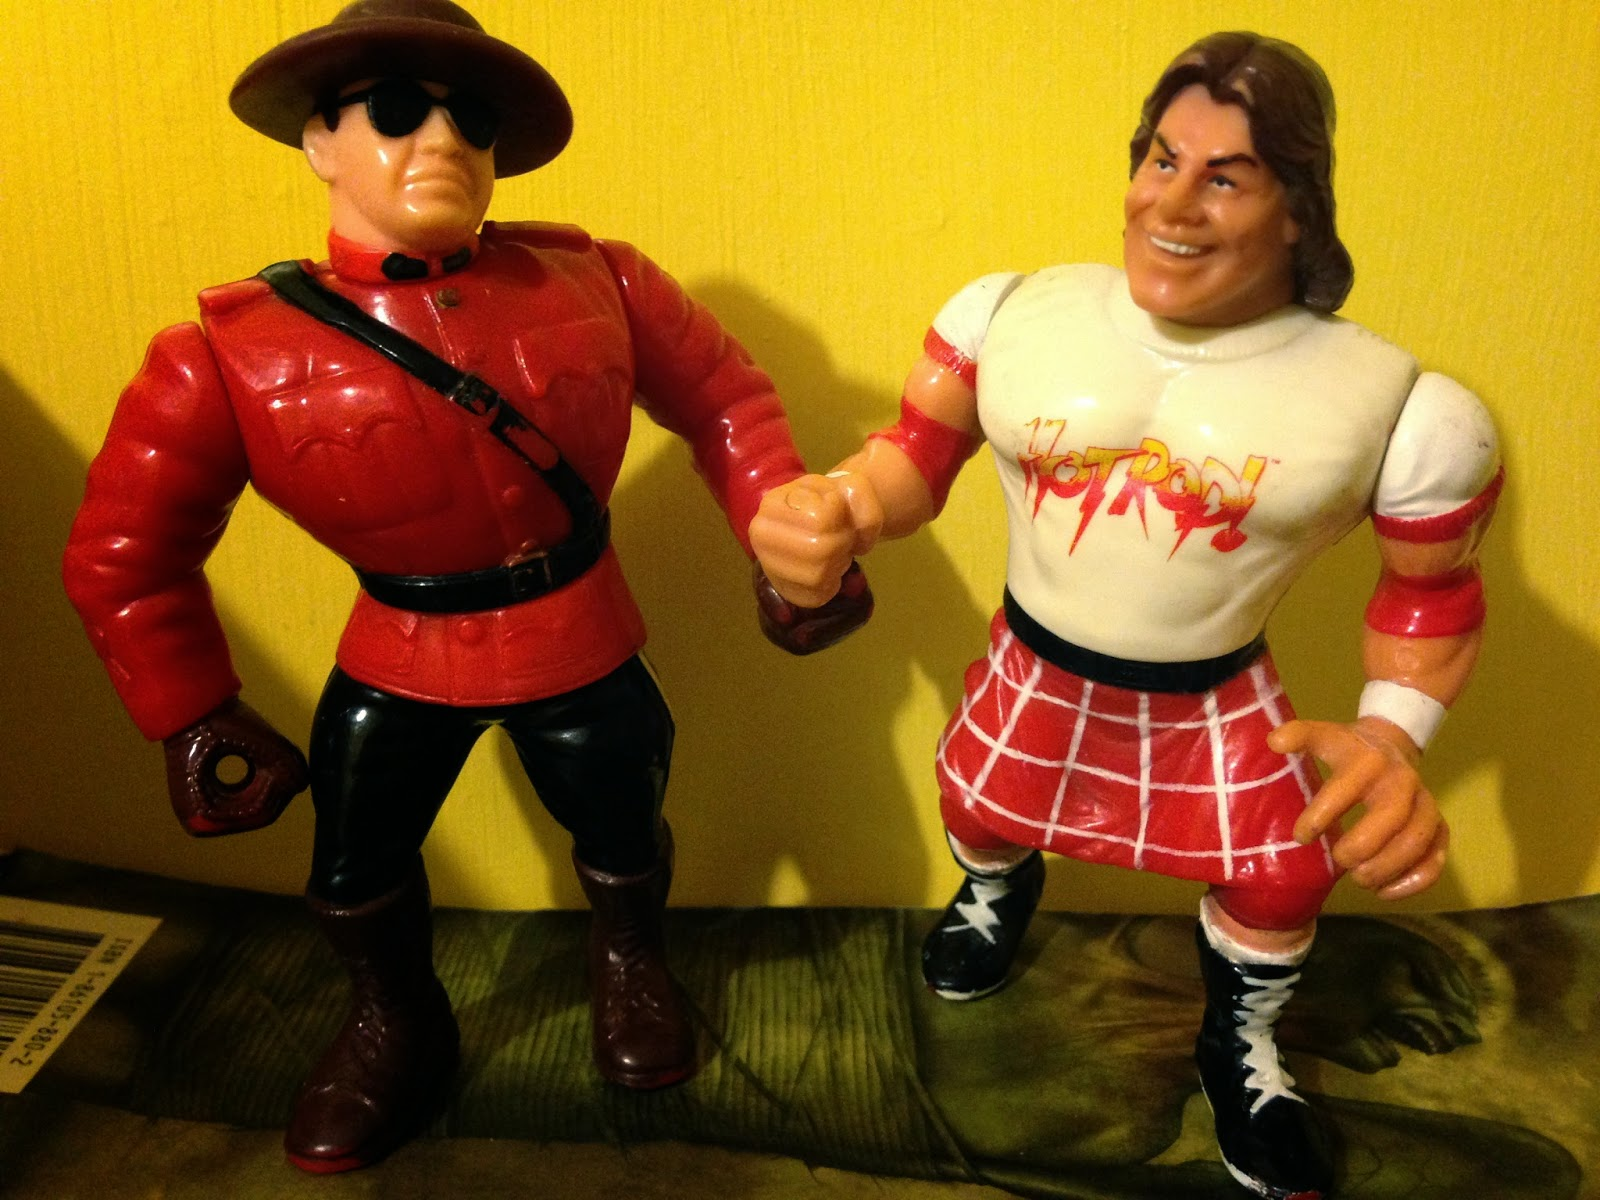 WWF Hasbro Figures - The Mountie vs. Rowdy Roddy Piper - Royal Rumble 1992